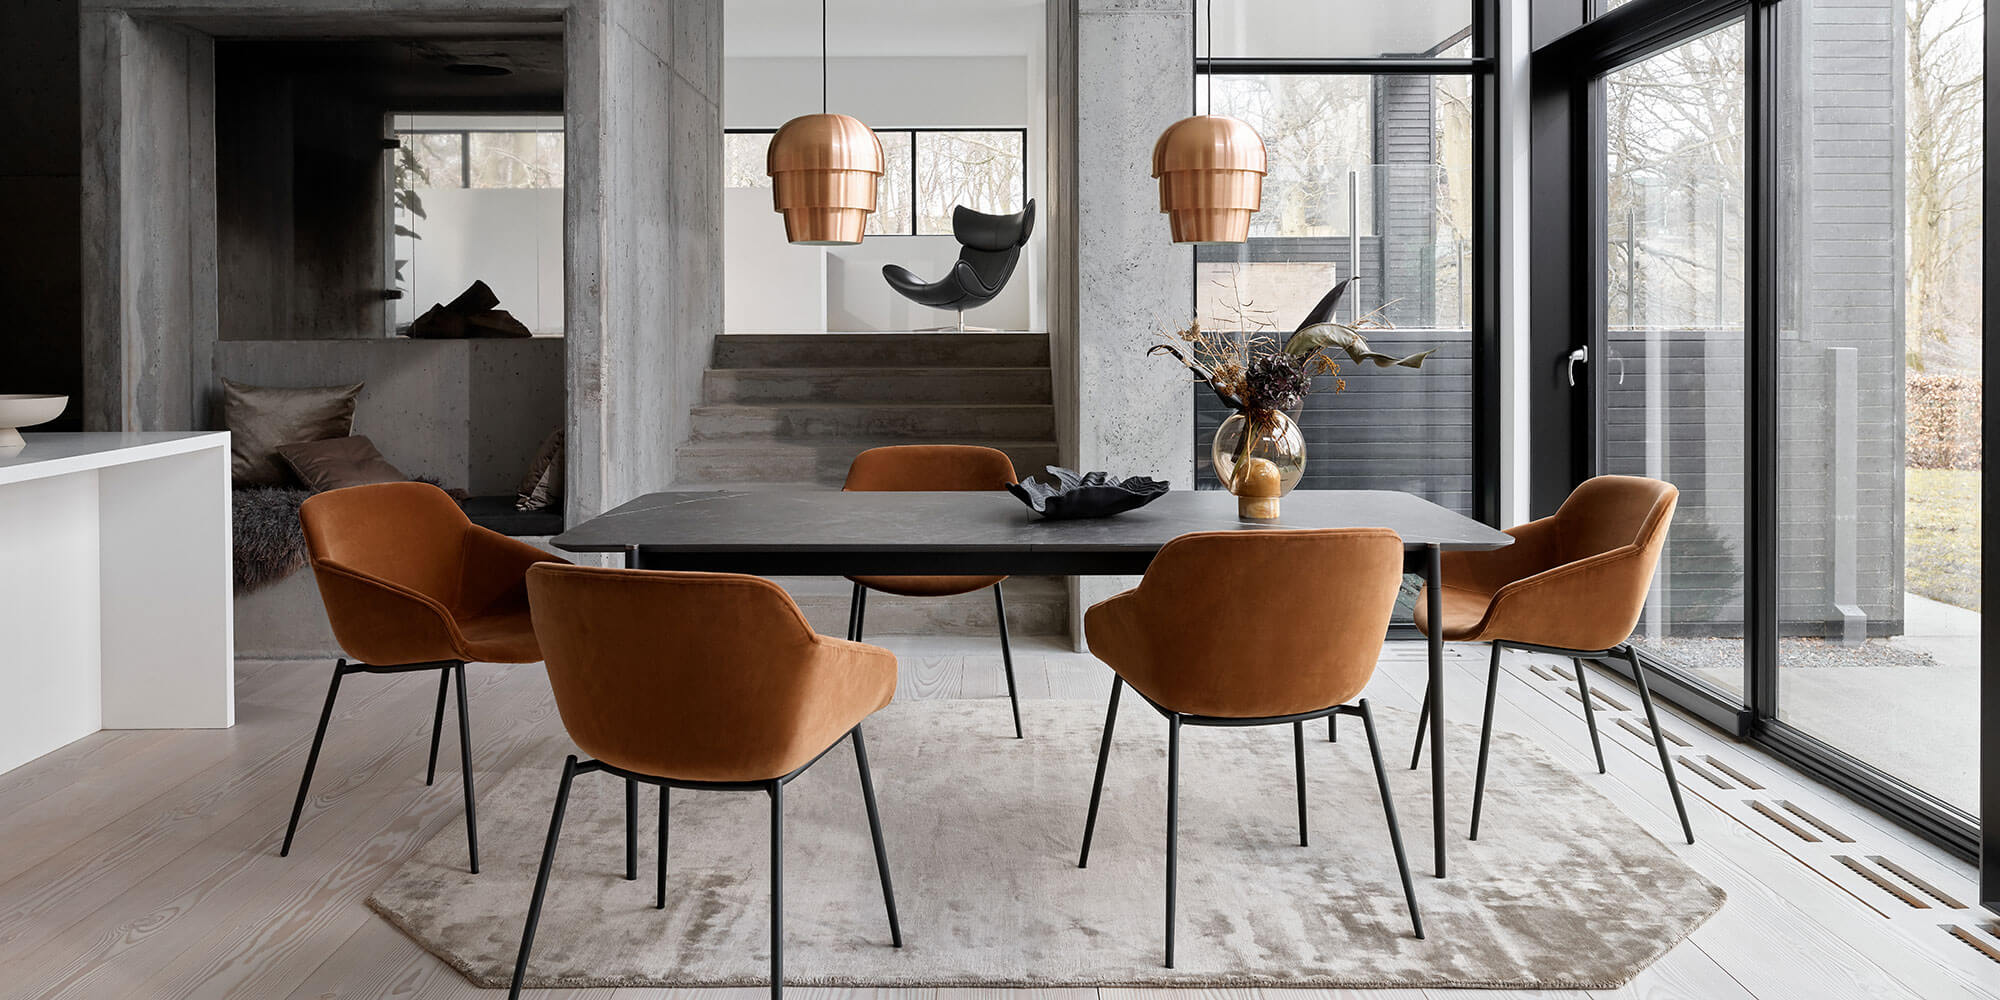 Swell Contemporary Danish Furniture Discover Boconcept Andrewgaddart Wooden Chair Designs For Living Room Andrewgaddartcom